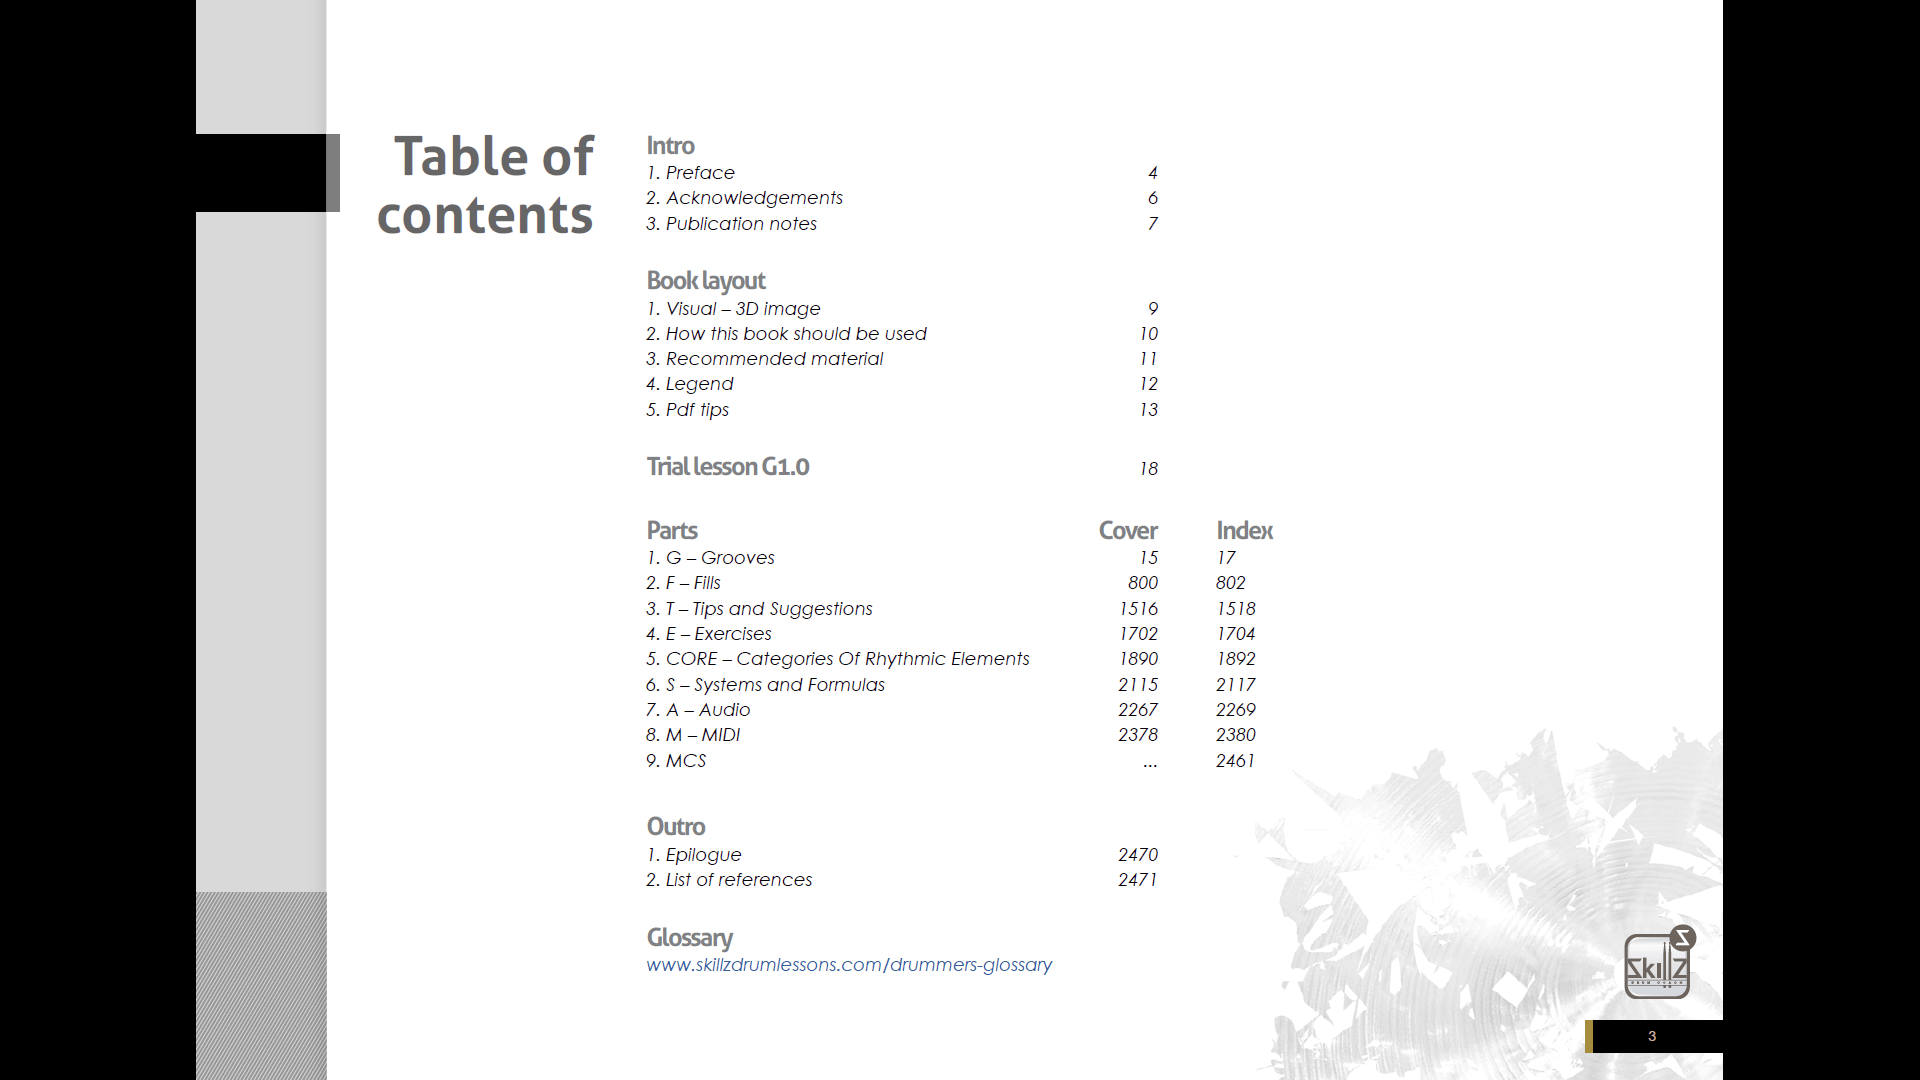 Screenshot Level 1 Table of Contents Skillz Drum Lessons